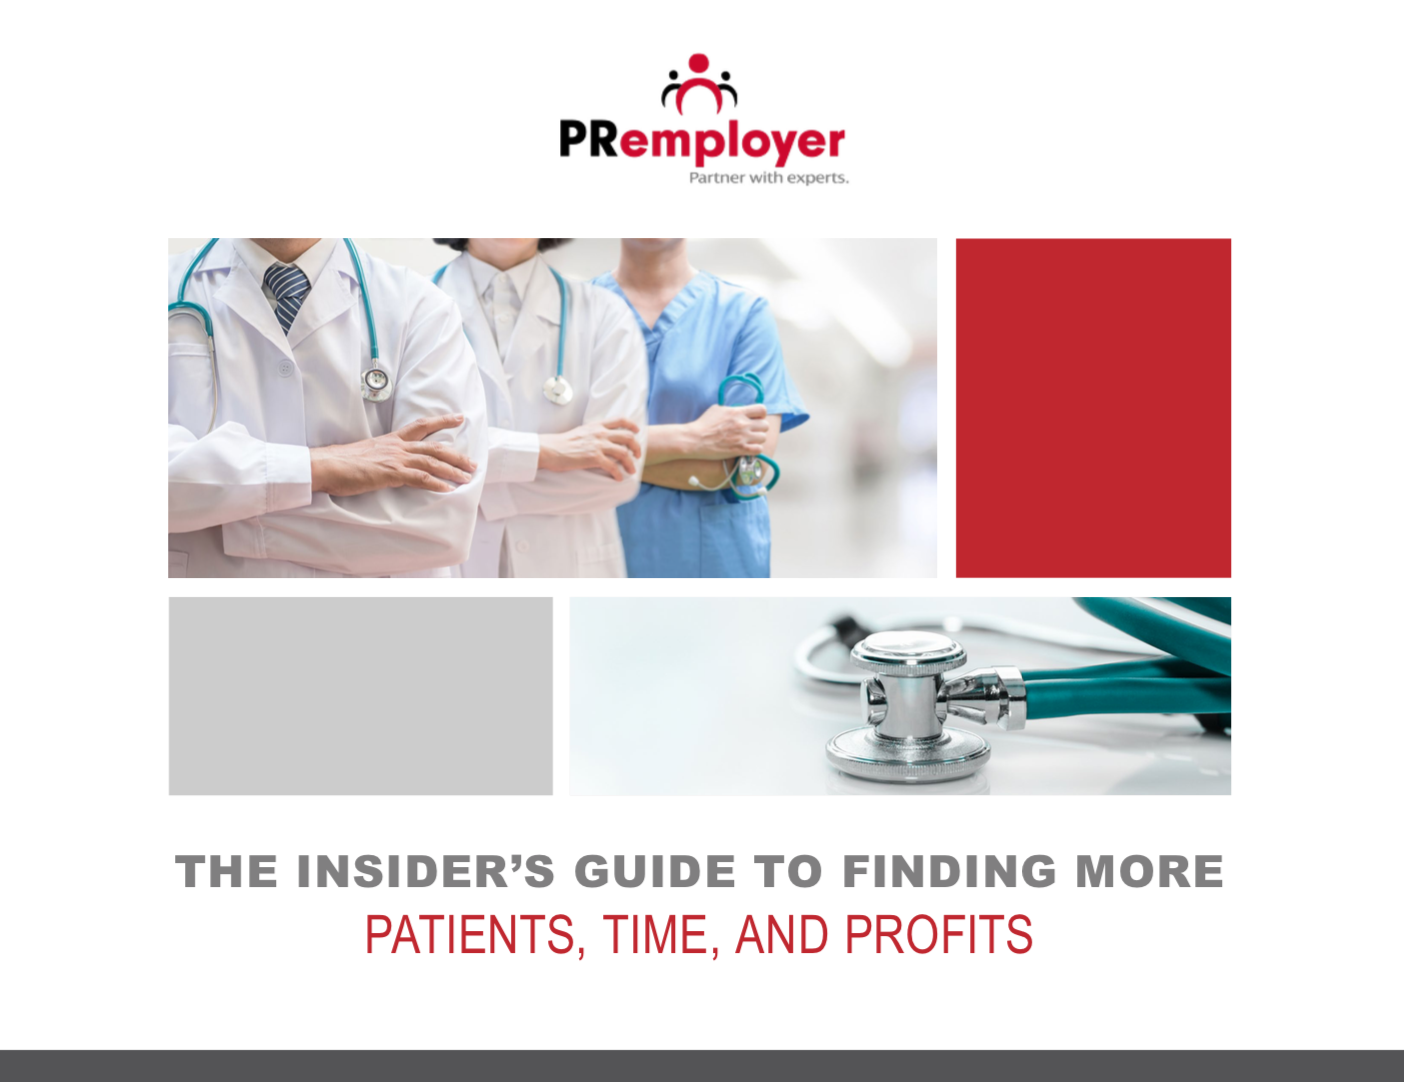 The Insiders Guide to Finding More Patients, Time and Profits-2